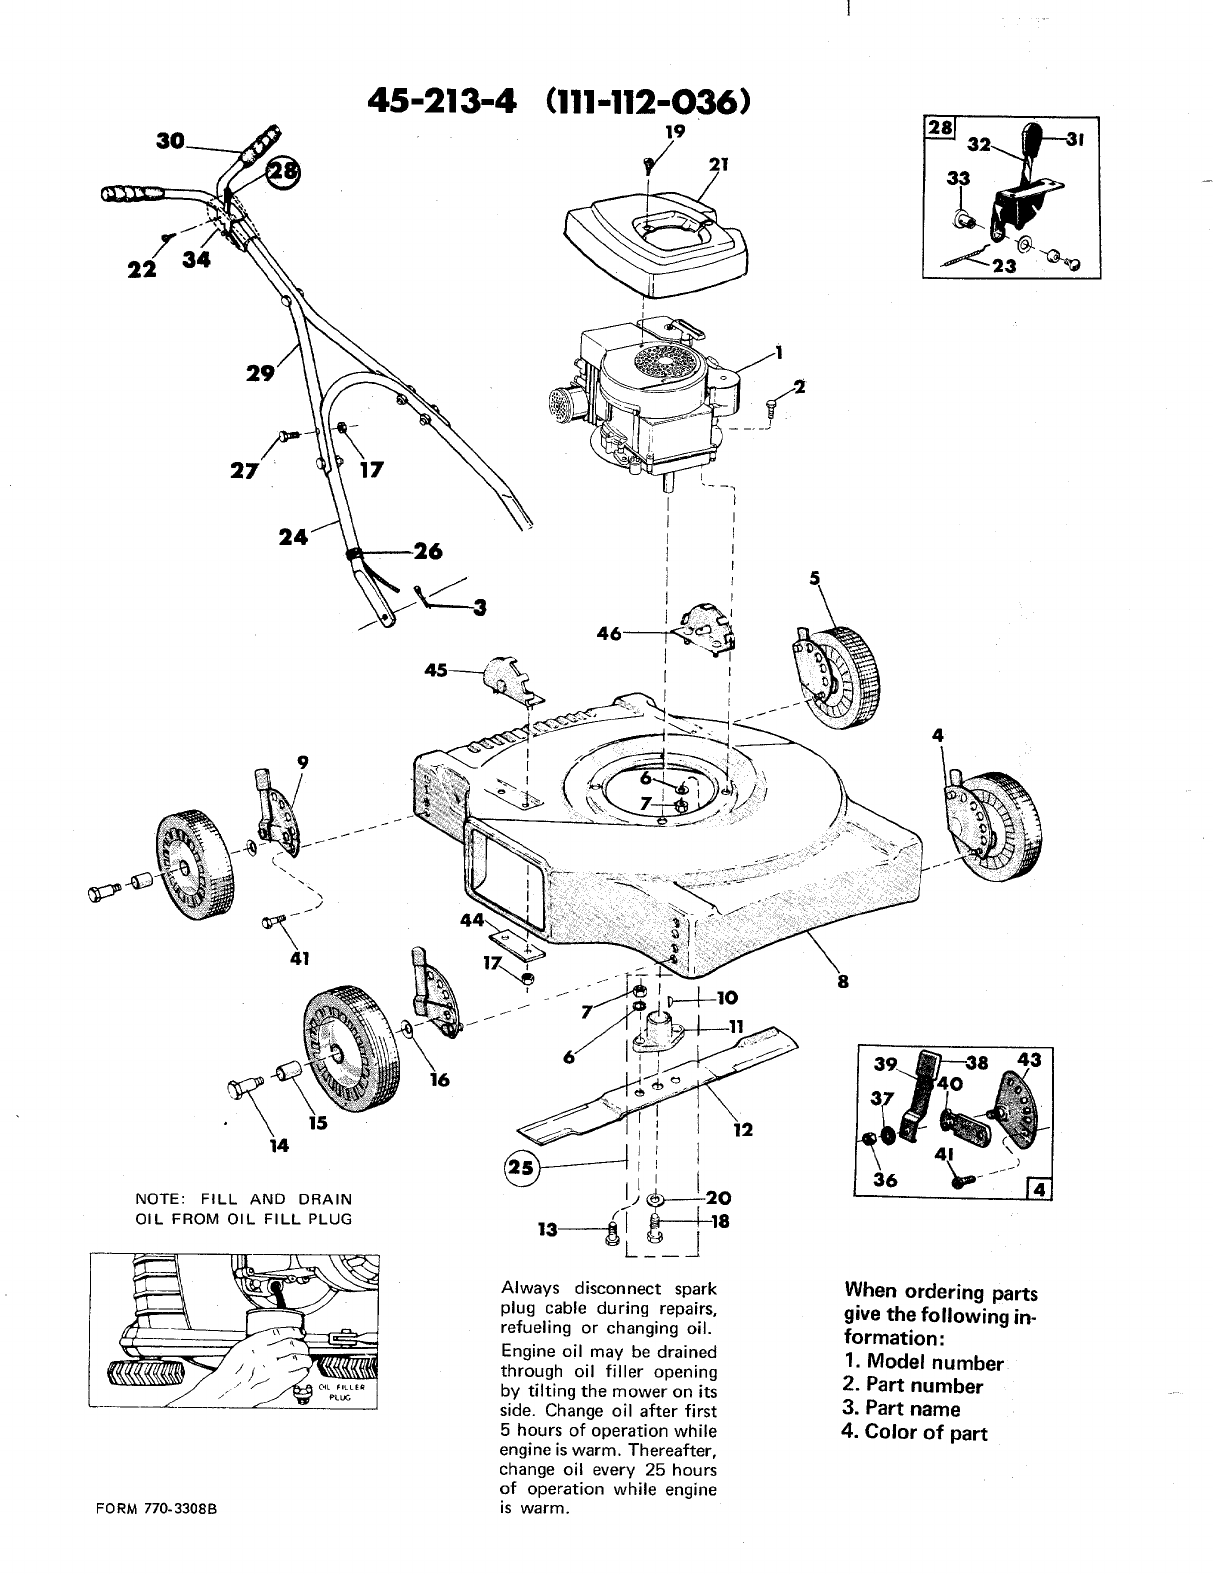 Page 2 of MTD Lawn Mower (111-112-036) User Guide